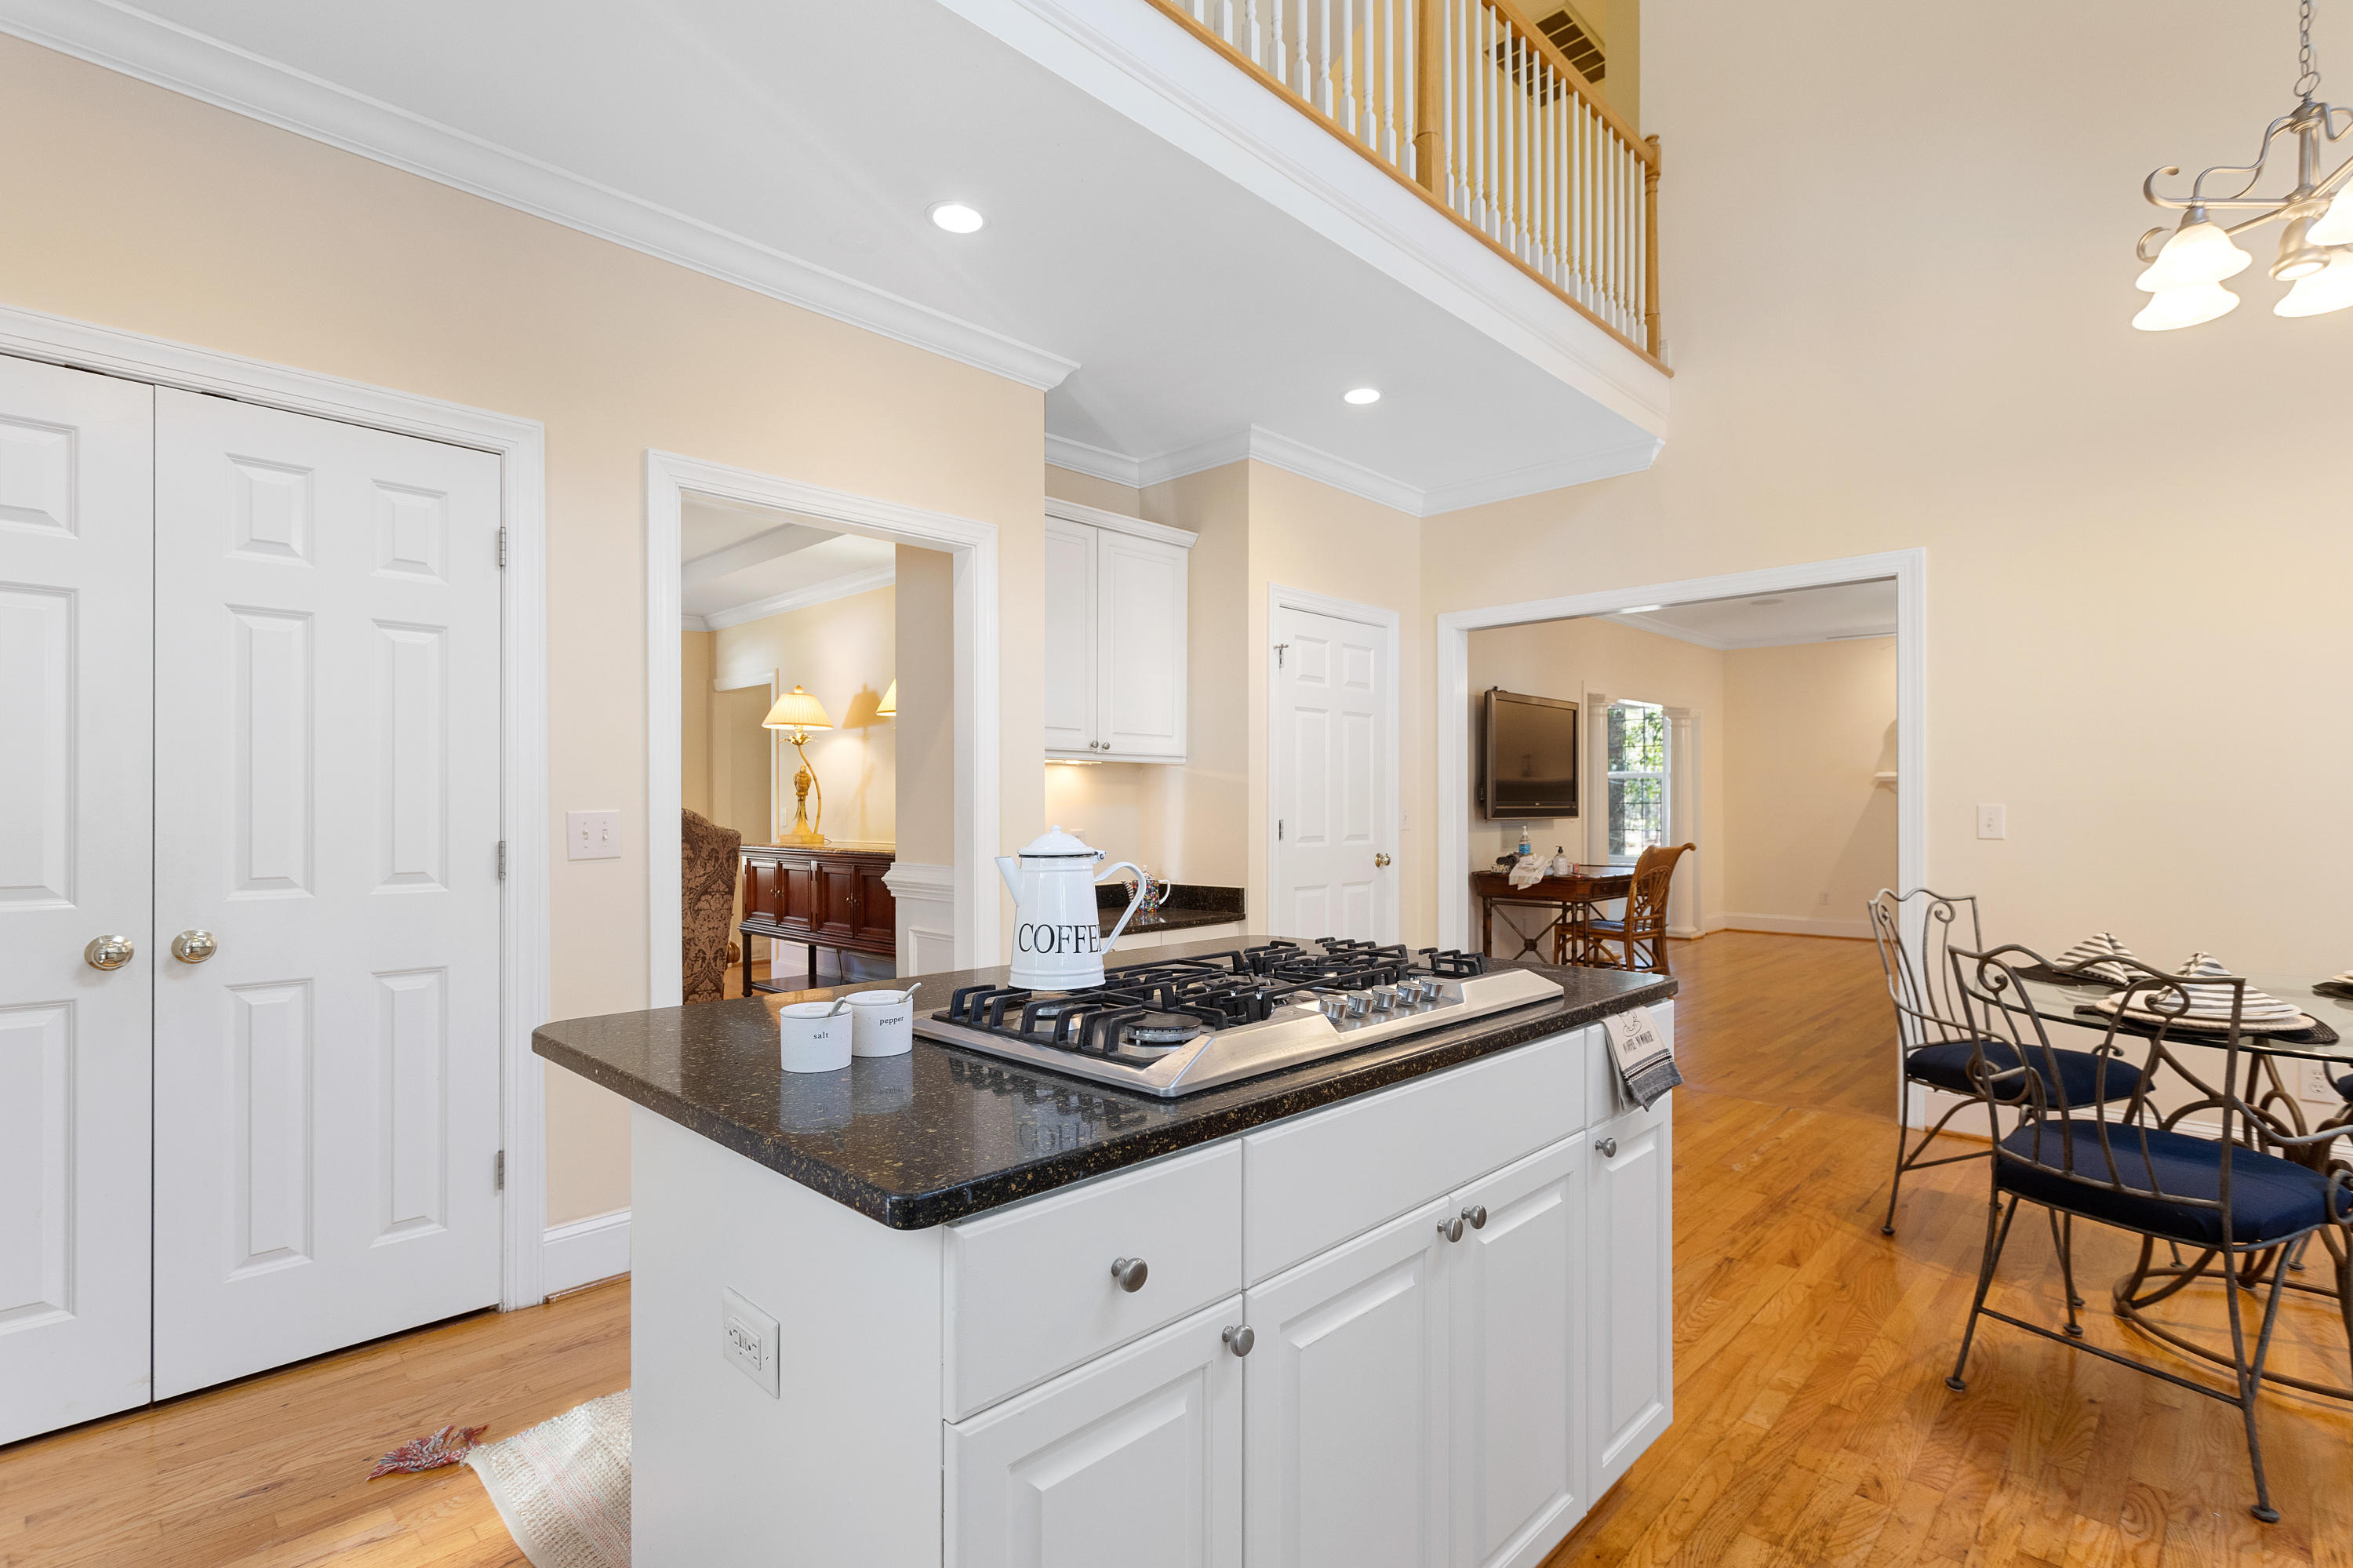 Dunes West Homes For Sale - 1842 Shell Ring, Mount Pleasant, SC - 9